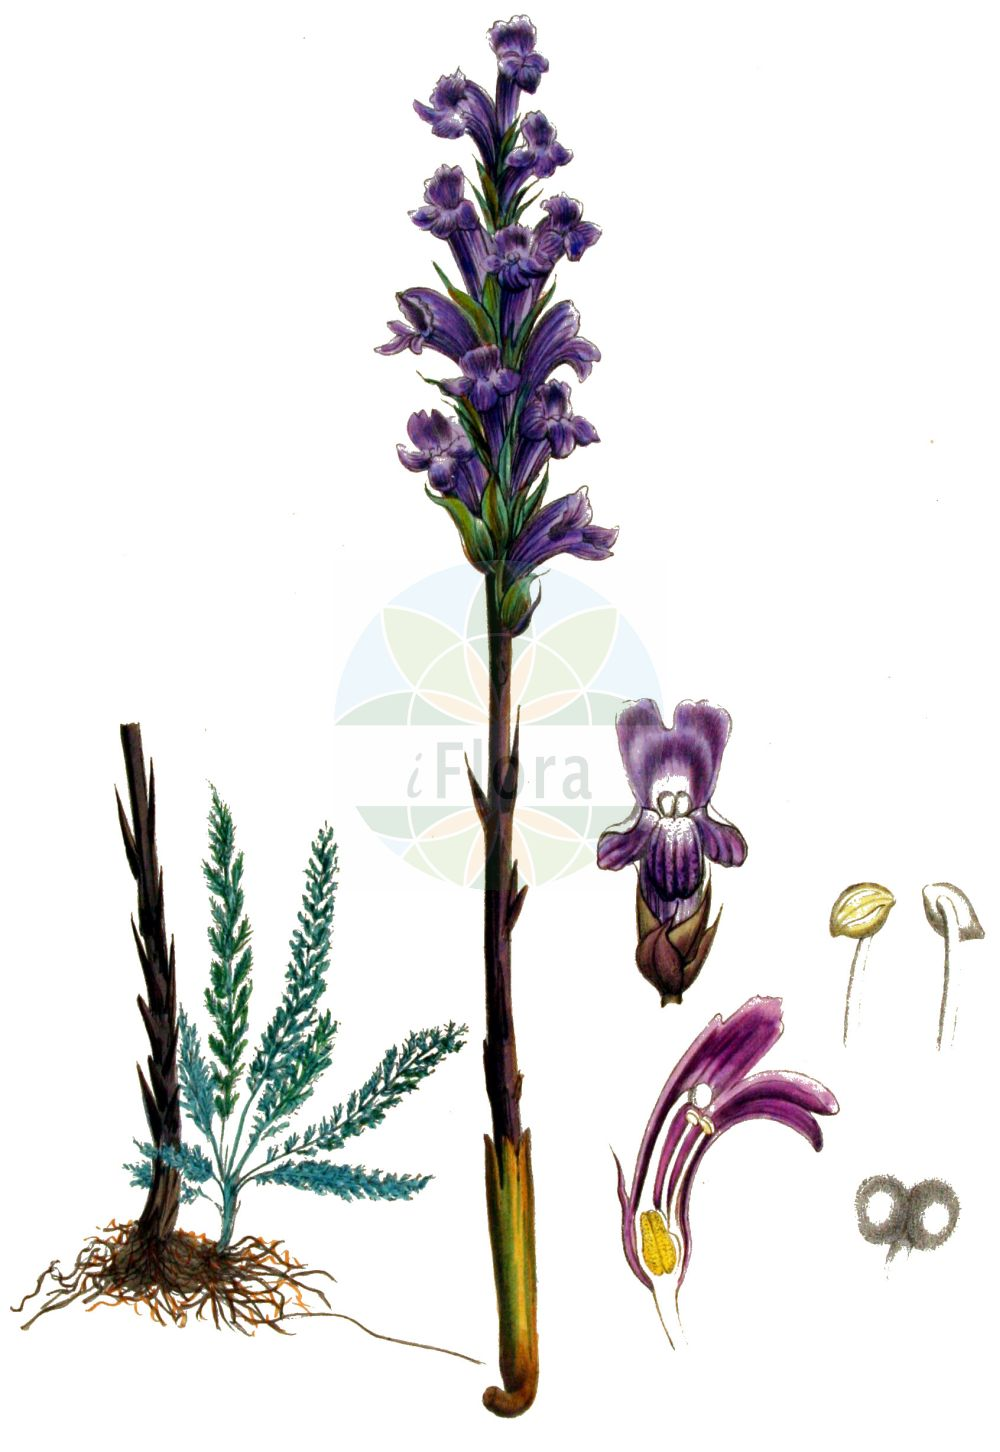 Historische Abbildung von Orobanche coerulescens (Blaeuliche Sommerwurz - Blue Broomrape). Das Bild zeigt Blatt, Bluete, Frucht und Same. ---- Historical Drawing of Orobanche coerulescens (Blaeuliche Sommerwurz - Blue Broomrape).The image is showing leaf, flower, fruit and seed.(Orobanche coerulescens,Blaeuliche Sommerwurz,Blue Broomrape,Orobanche coerulescens,Orobanche korshinskyi,Blaeuliche Sommerwurz,Blue Broomrape,Orobanche,Sommerwurz,Broomrape,Orobanchaceae,Sommerwurzgewaechse,Broomrape family,Blatt,Bluete,Frucht,Same,leaf,flower,fruit,seed,Kops (1800-1934))